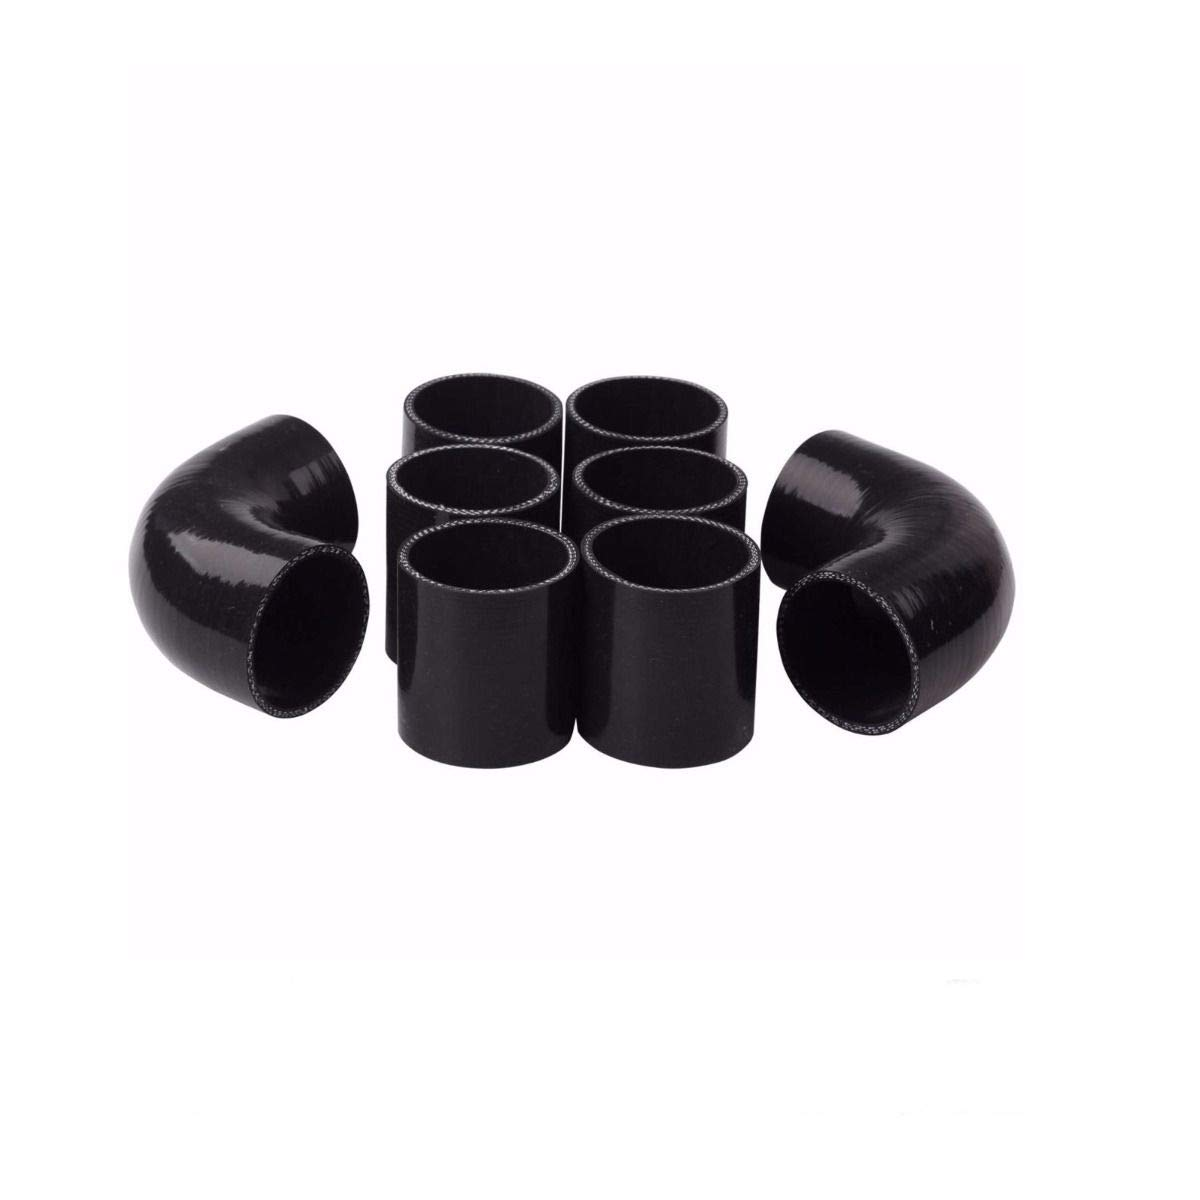 Coupler Black TRIL GEAR 8PCS Universal 2 Inch Aluminum Intercooler Piping U-Pipe Kit T-Clamps